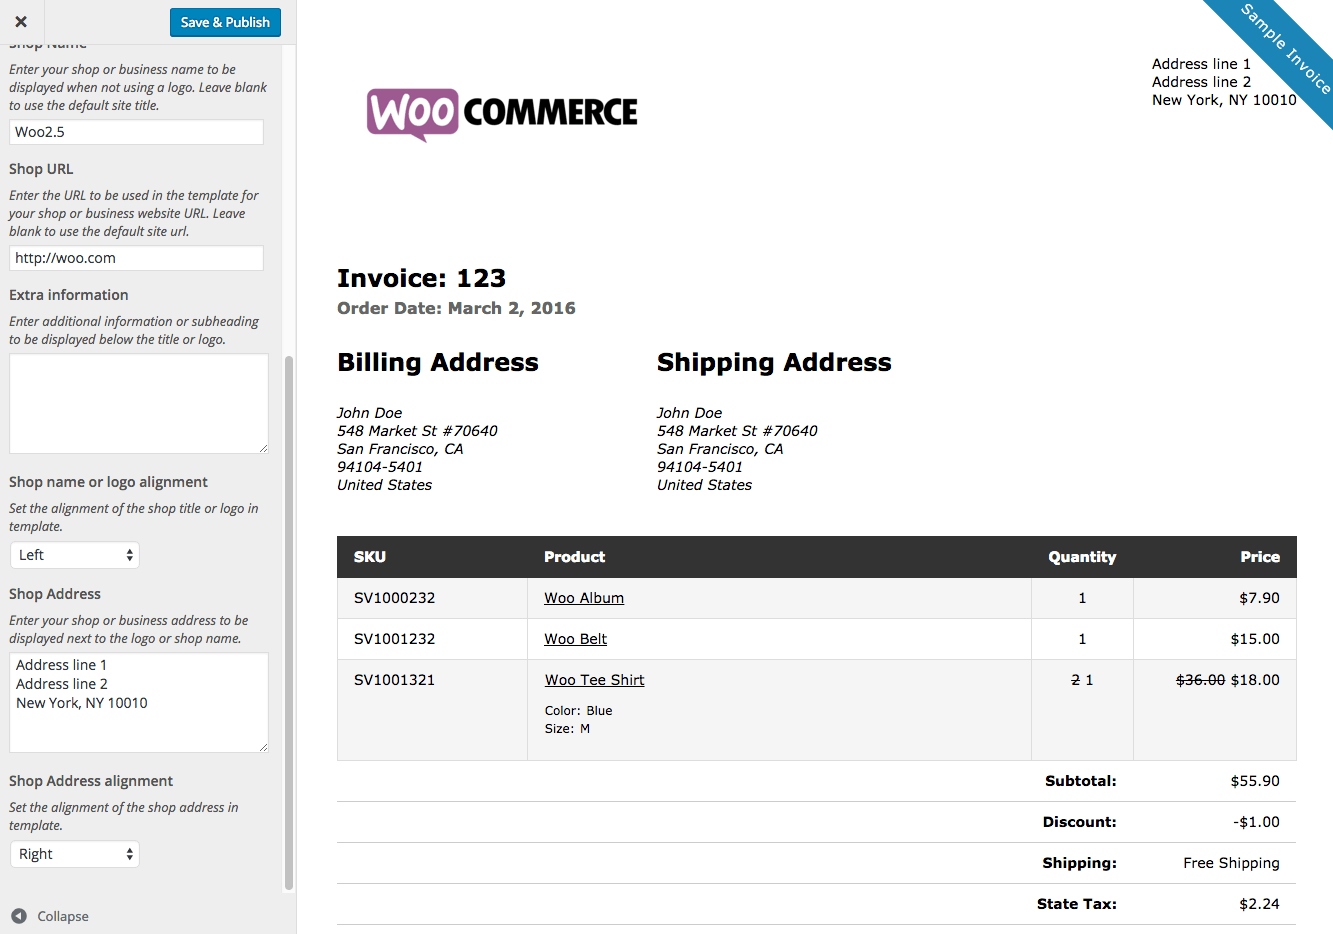 Modaoxus  Pleasing Woocommerce Print Invoices Amp Packing Lists  Woocommerce Docs With Exquisite Woocommerce Print Invoices  Packing Lists Customizer With Cool What Is A Profoma Invoice Also Custom Invoice Quickbooks In Addition Ford Focus St Invoice Price And Silverado Invoice Price As Well As Unique Invoice Number Additionally Excel Template Invoice From Docswoocommercecom With Modaoxus  Exquisite Woocommerce Print Invoices Amp Packing Lists  Woocommerce Docs With Cool Woocommerce Print Invoices  Packing Lists Customizer And Pleasing What Is A Profoma Invoice Also Custom Invoice Quickbooks In Addition Ford Focus St Invoice Price From Docswoocommercecom